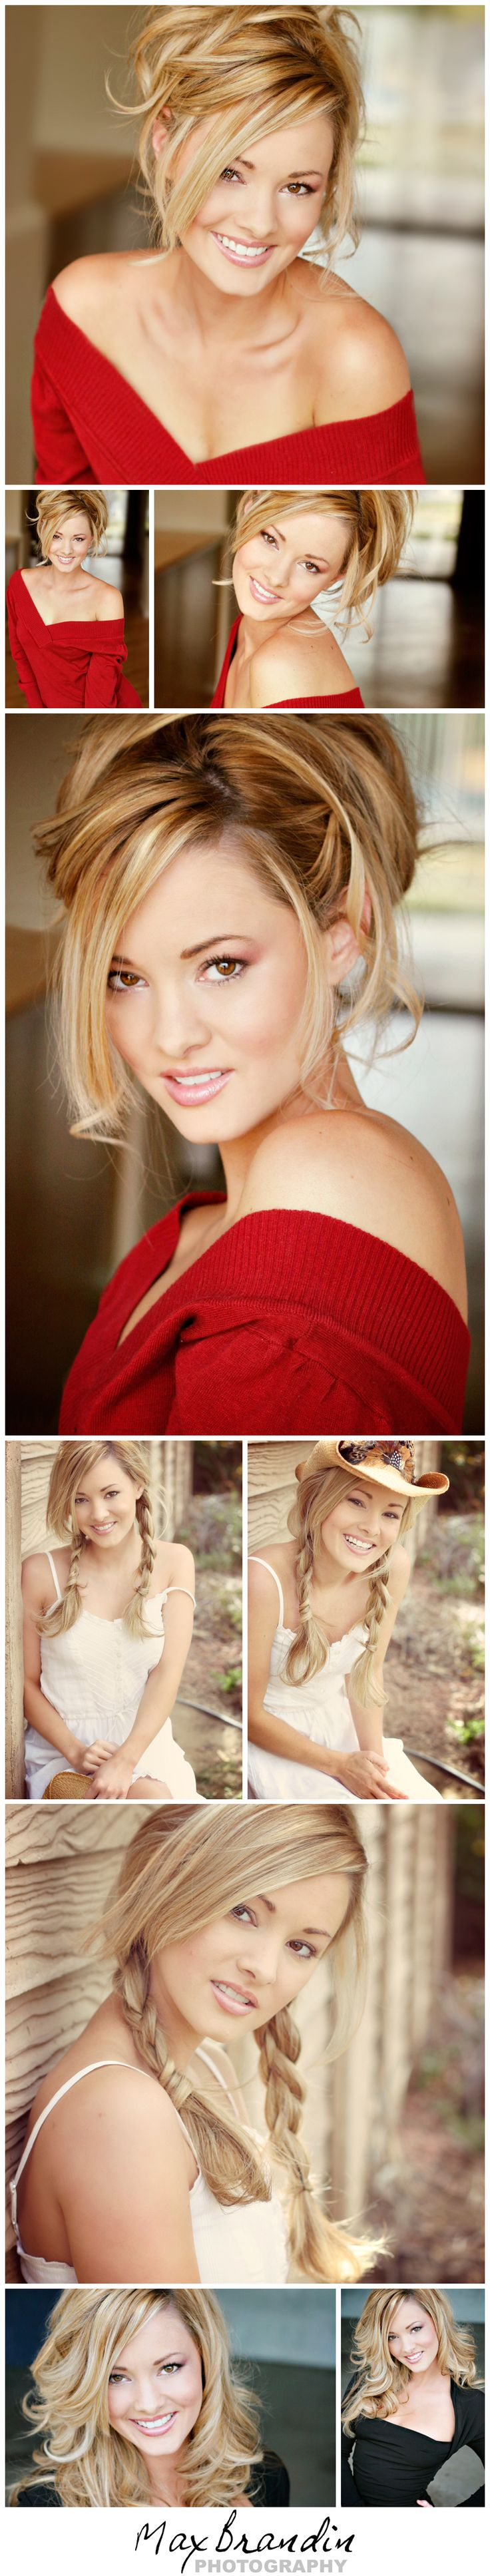 Senior Pictures & Actor Headshots in Thousand Oaks, CA by Max Brandin Photography